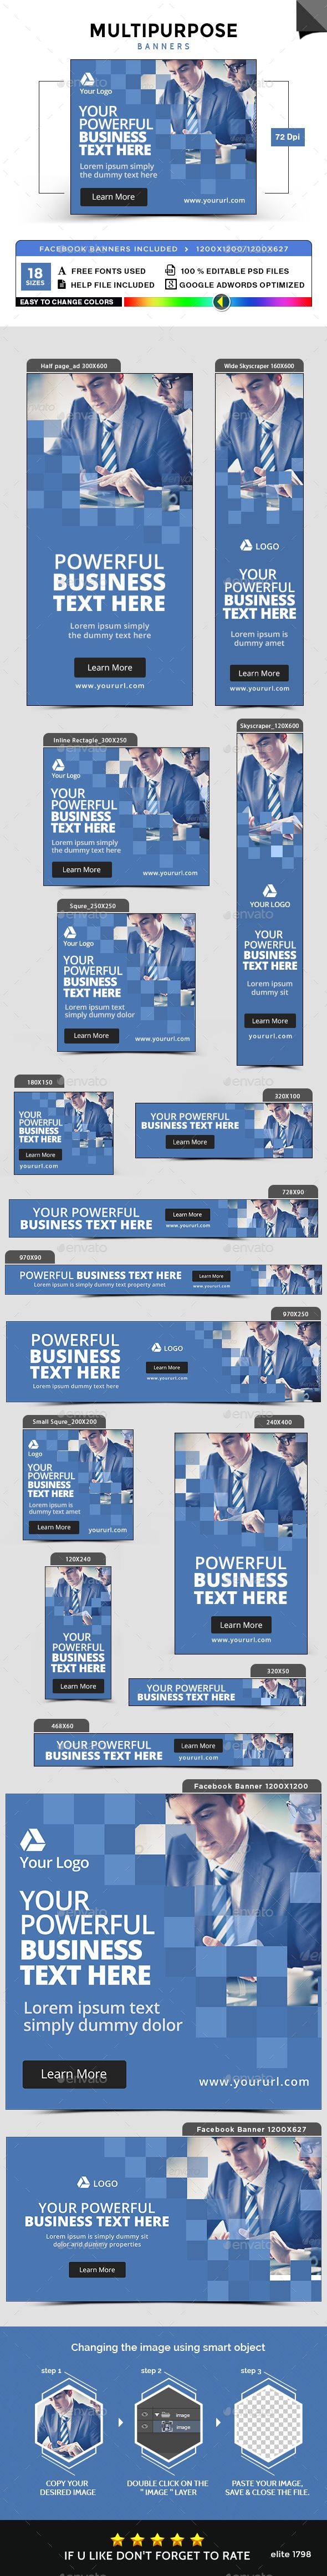 Multipurpose Banners Design Template - Banners & Ads Web Elements Template PSD. Download here: https://graphicriver.net/item/multipurpose-banners/17741106?s_rank=6&ref=yinkira